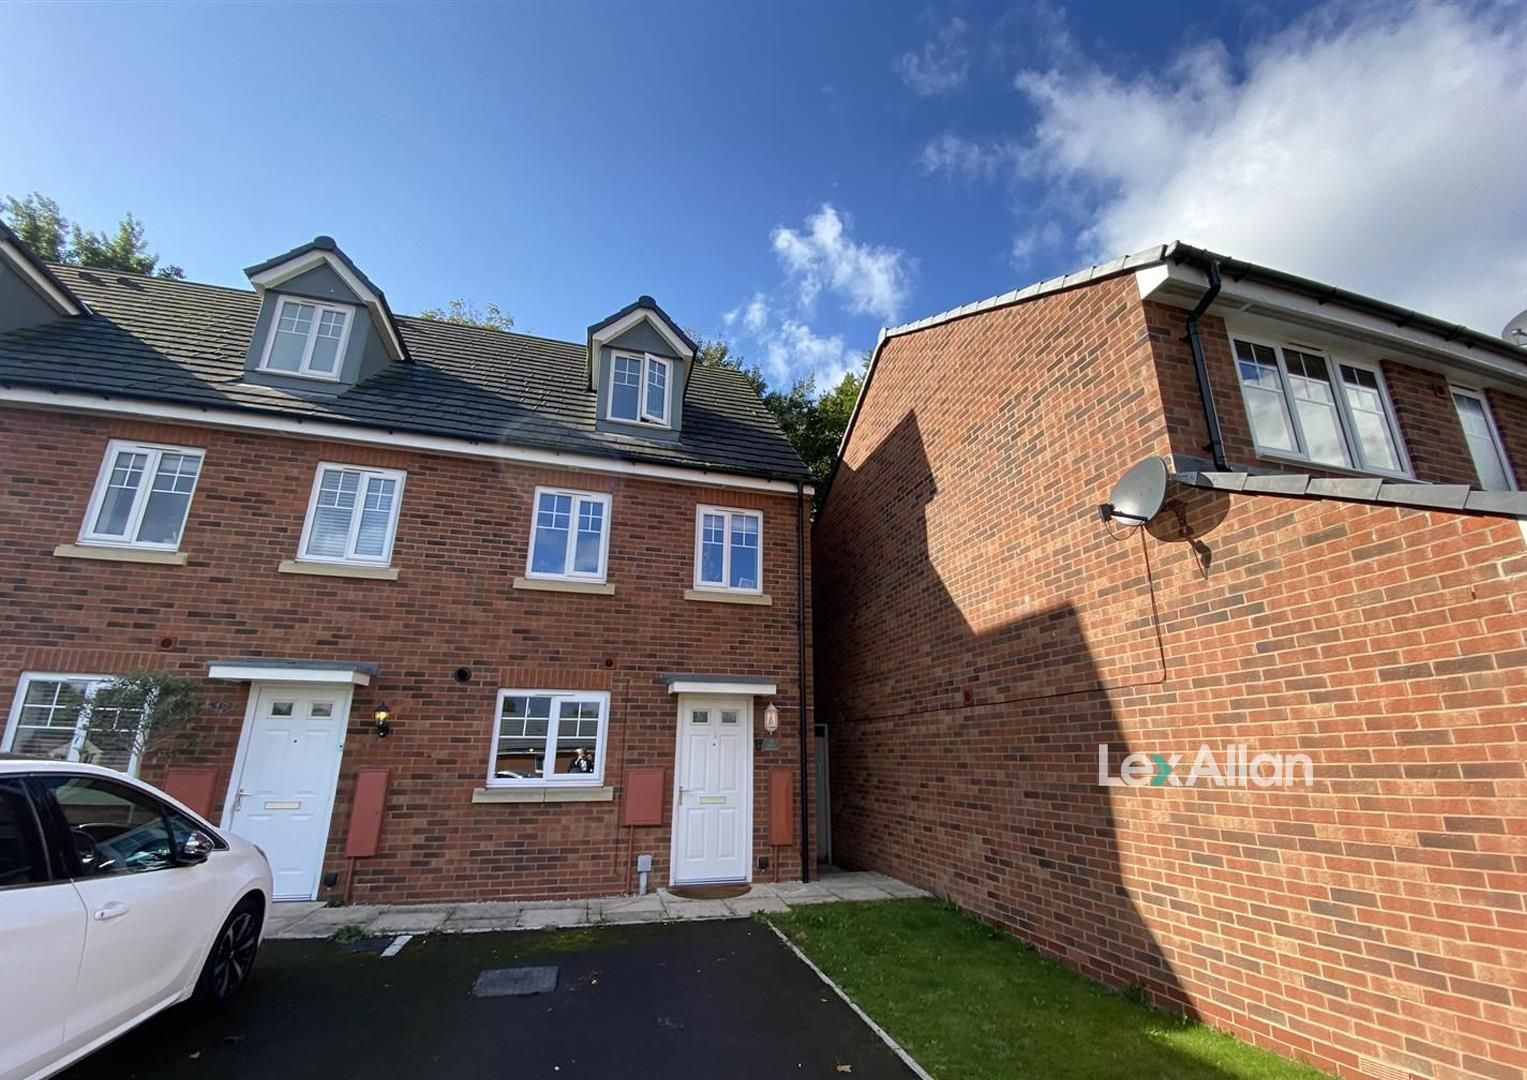 3 bed town-house for sale in Wollaston, DY8